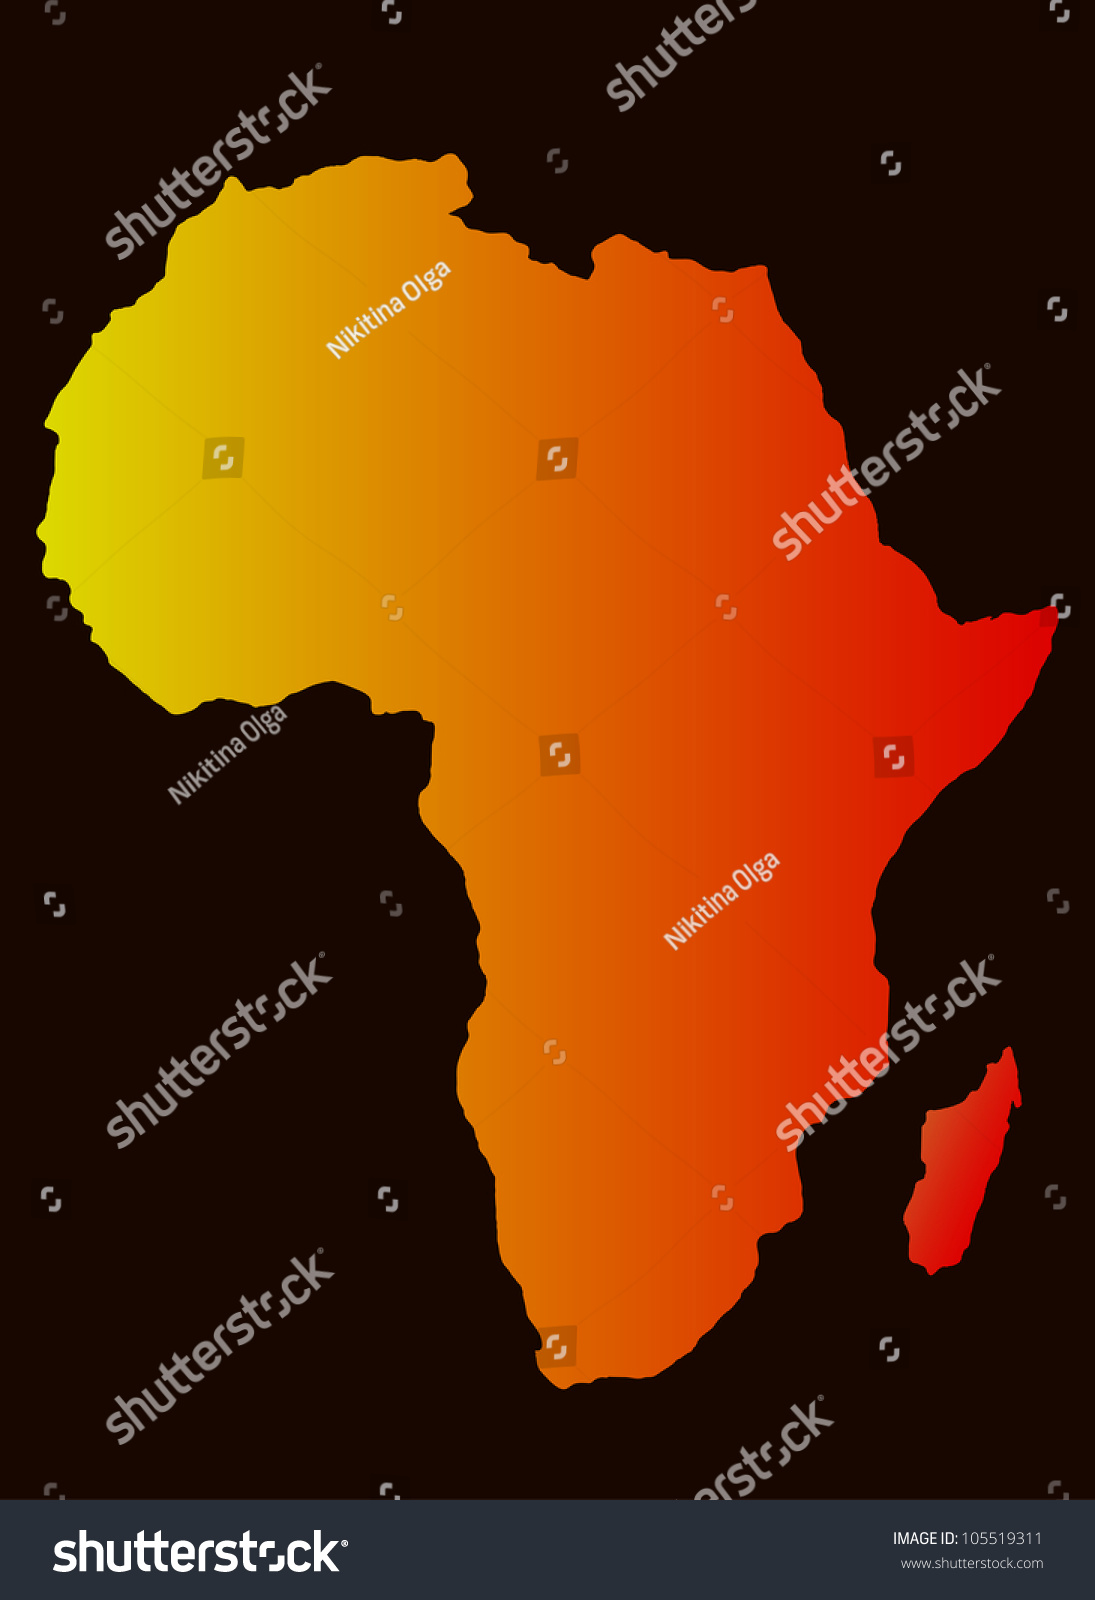 background with africa map silhouette  vector image